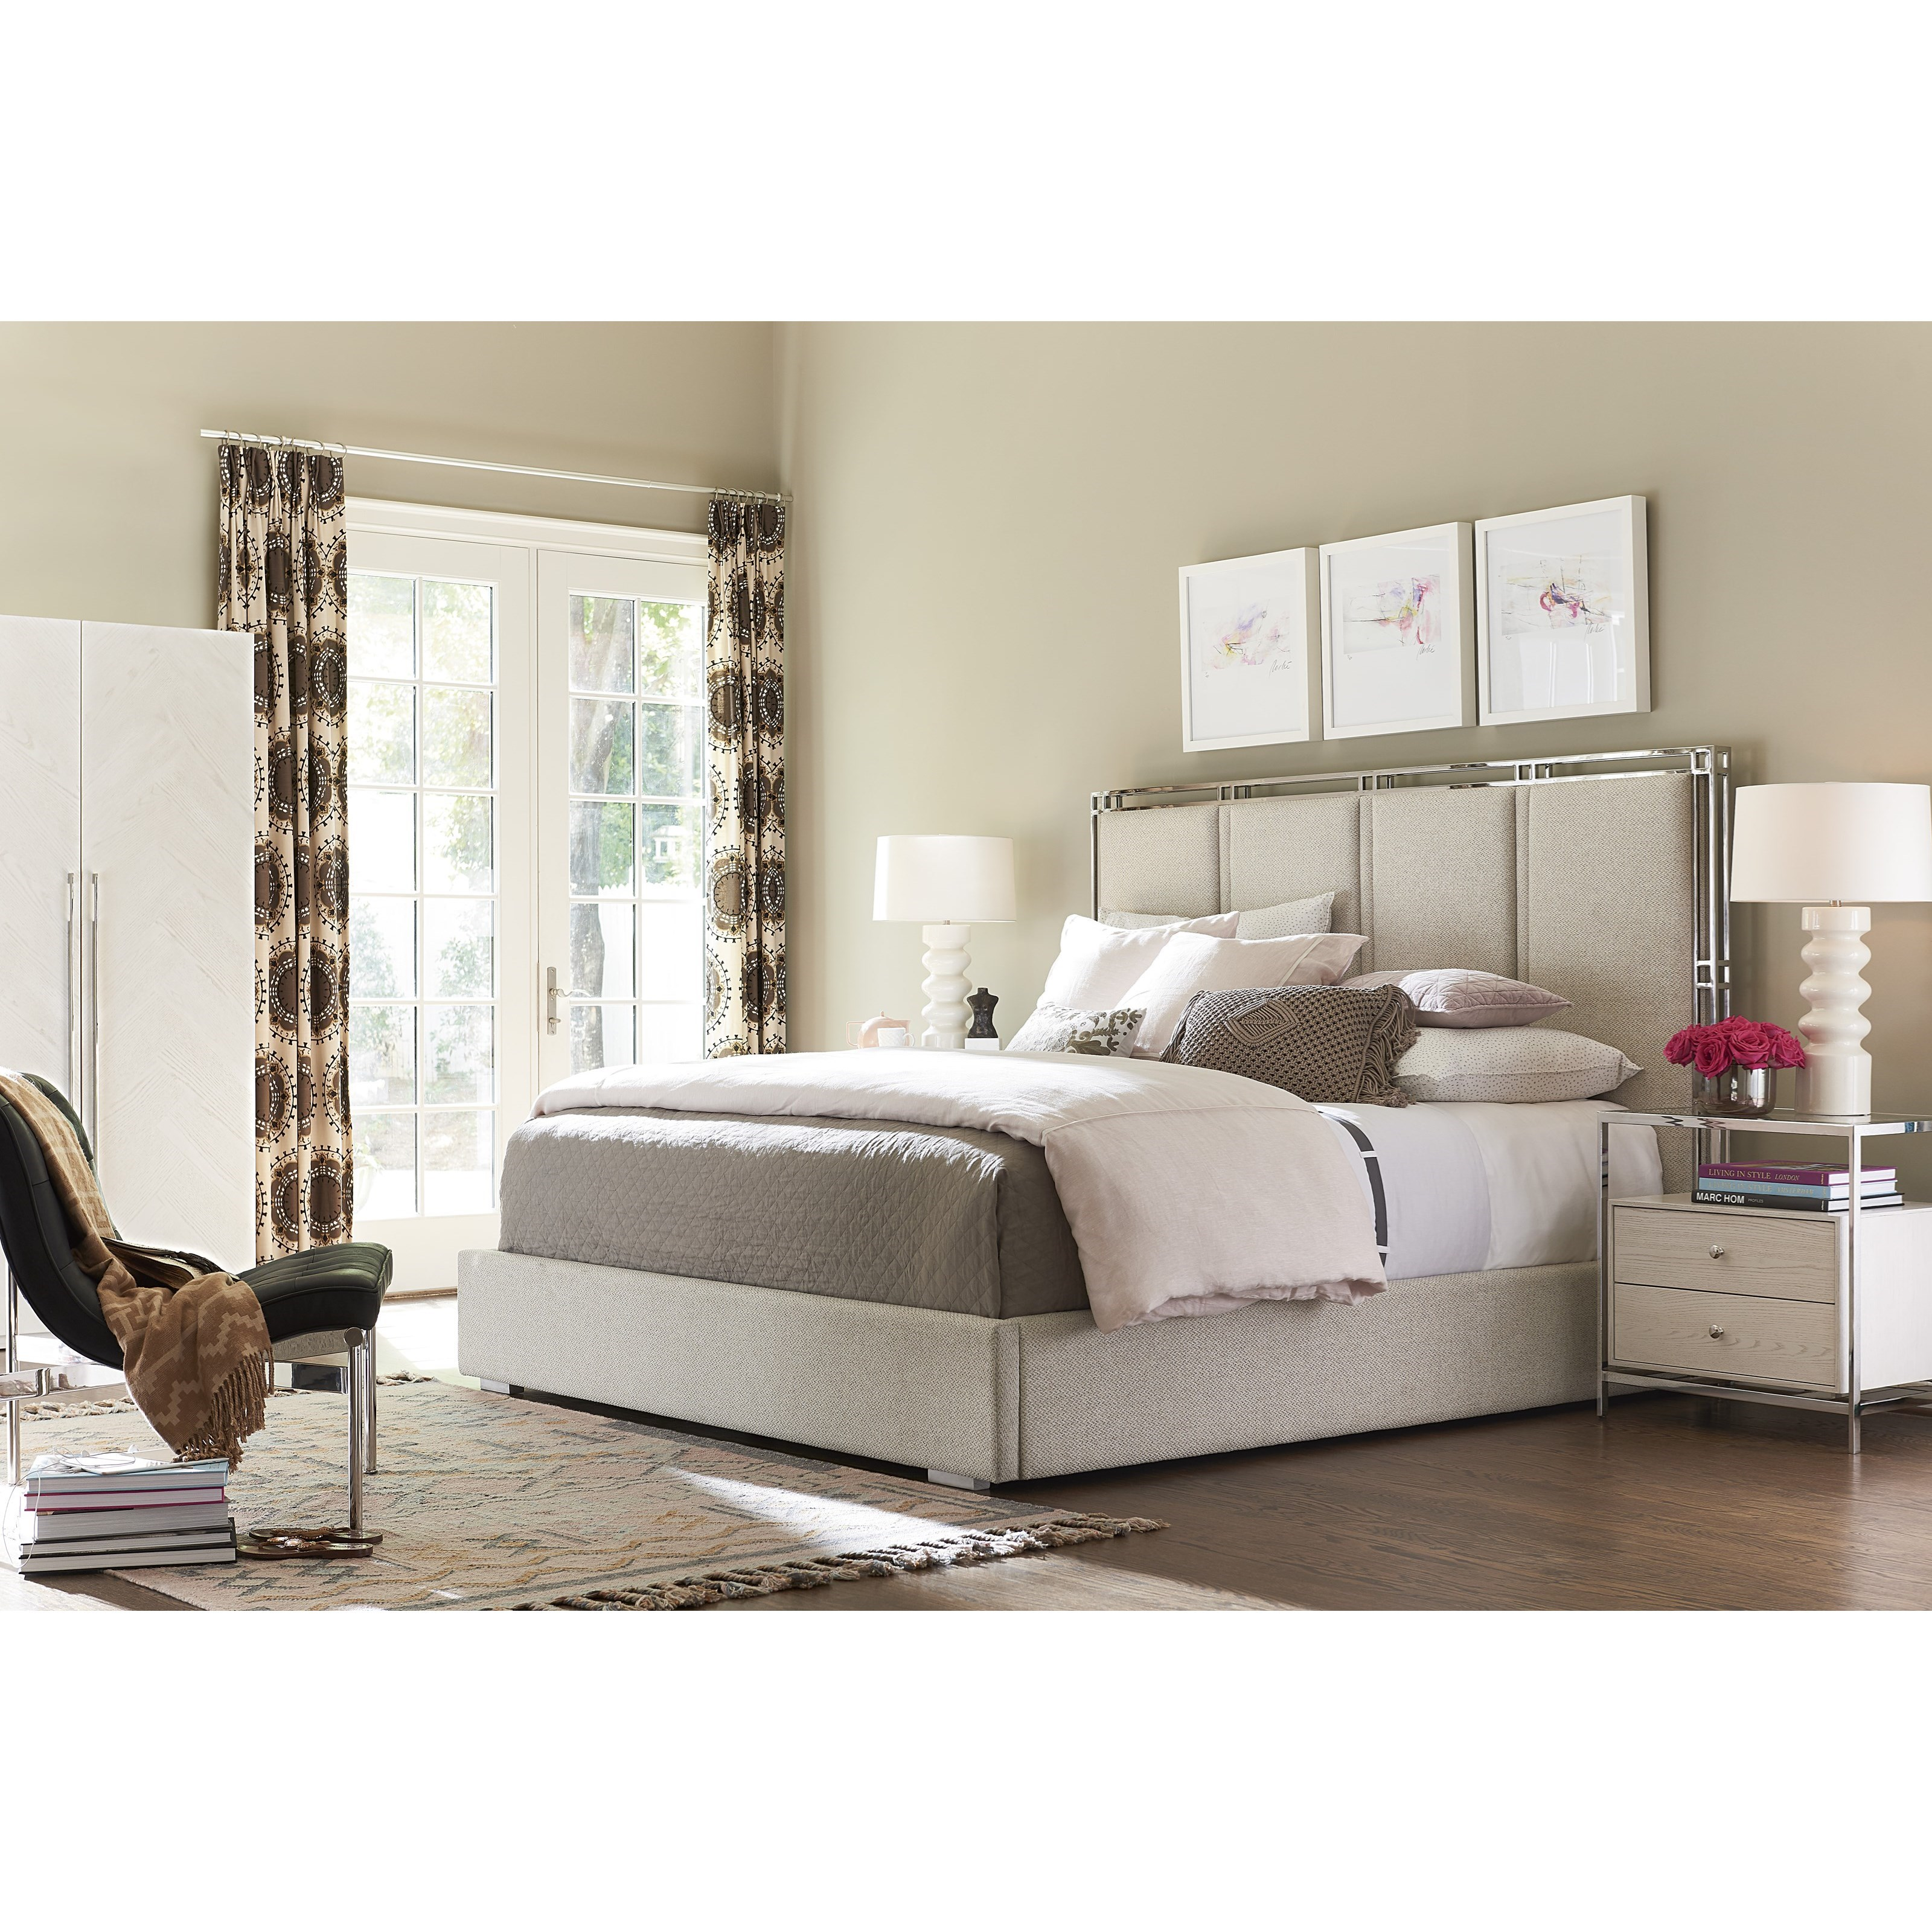 Paradox King Bedroom Group by Universal at Baer's Furniture